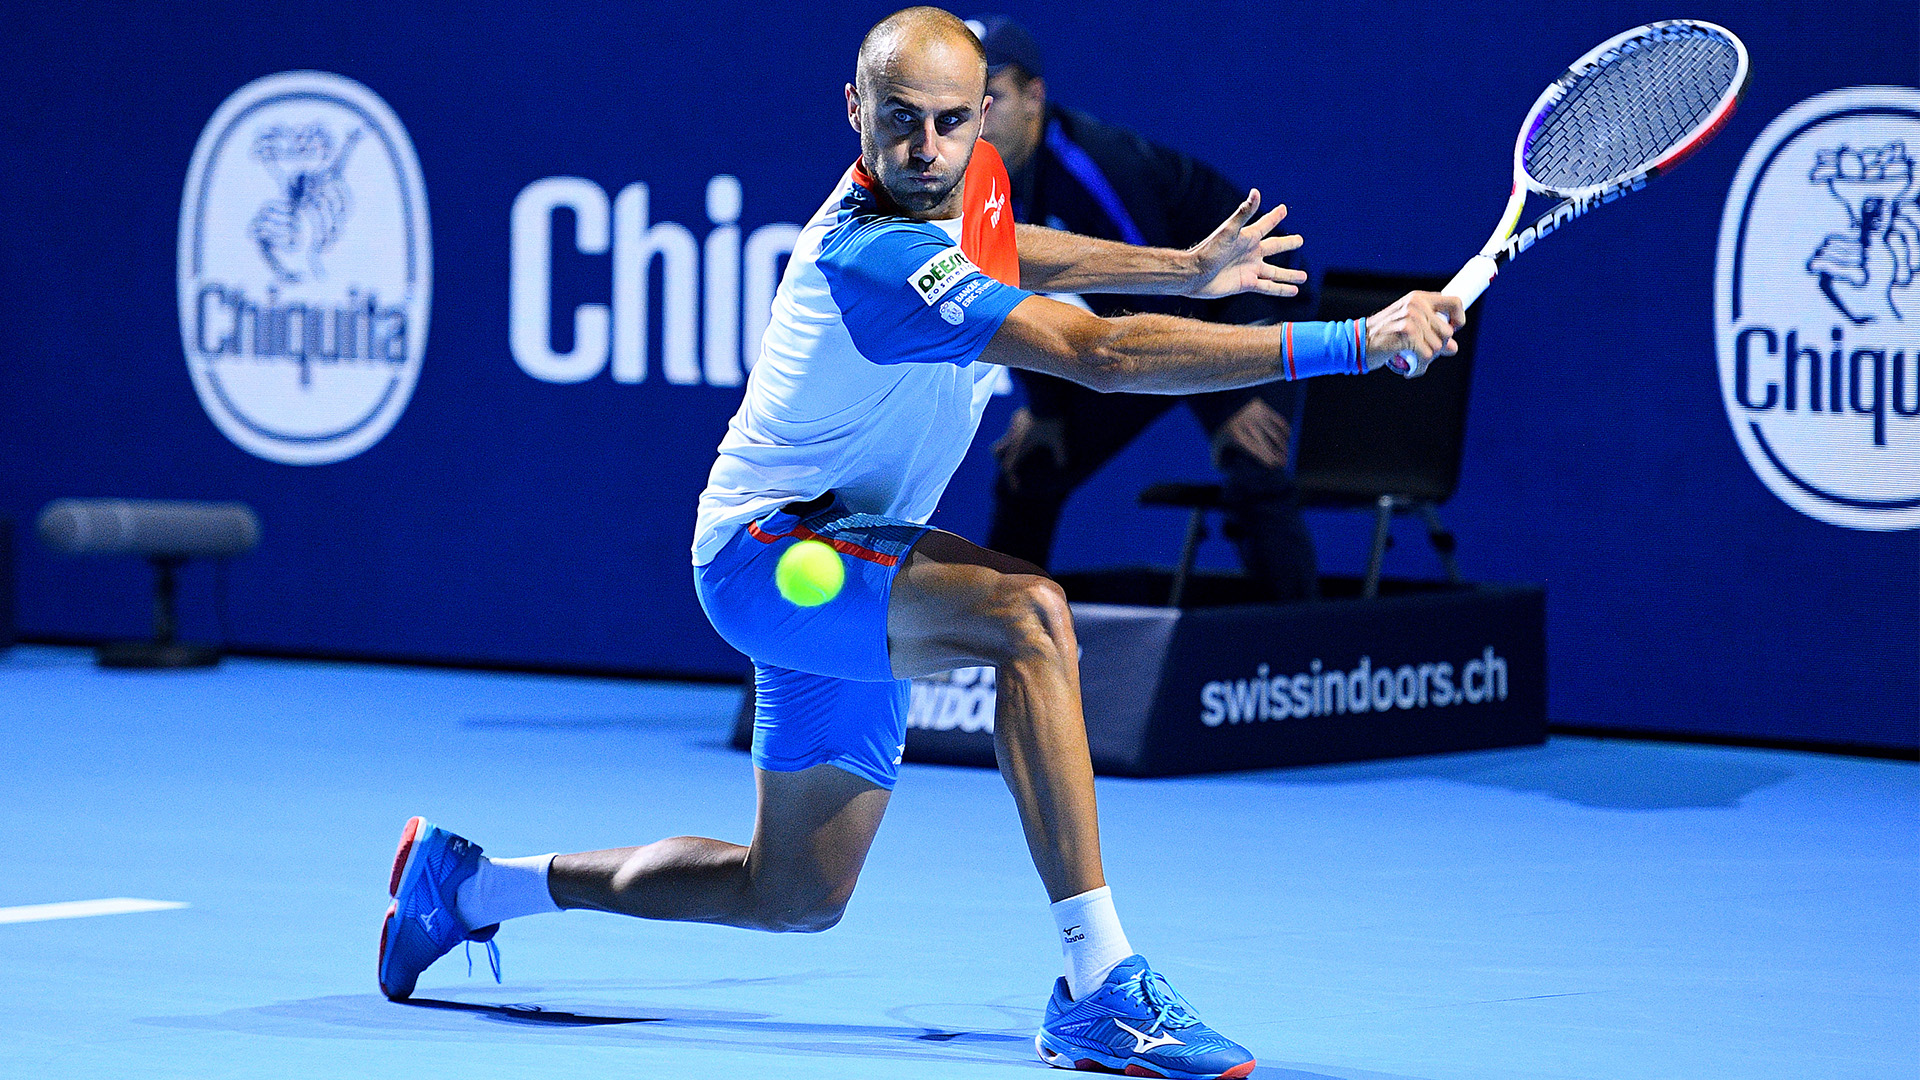 Copil qualified in the finals, at Swiss Indoors